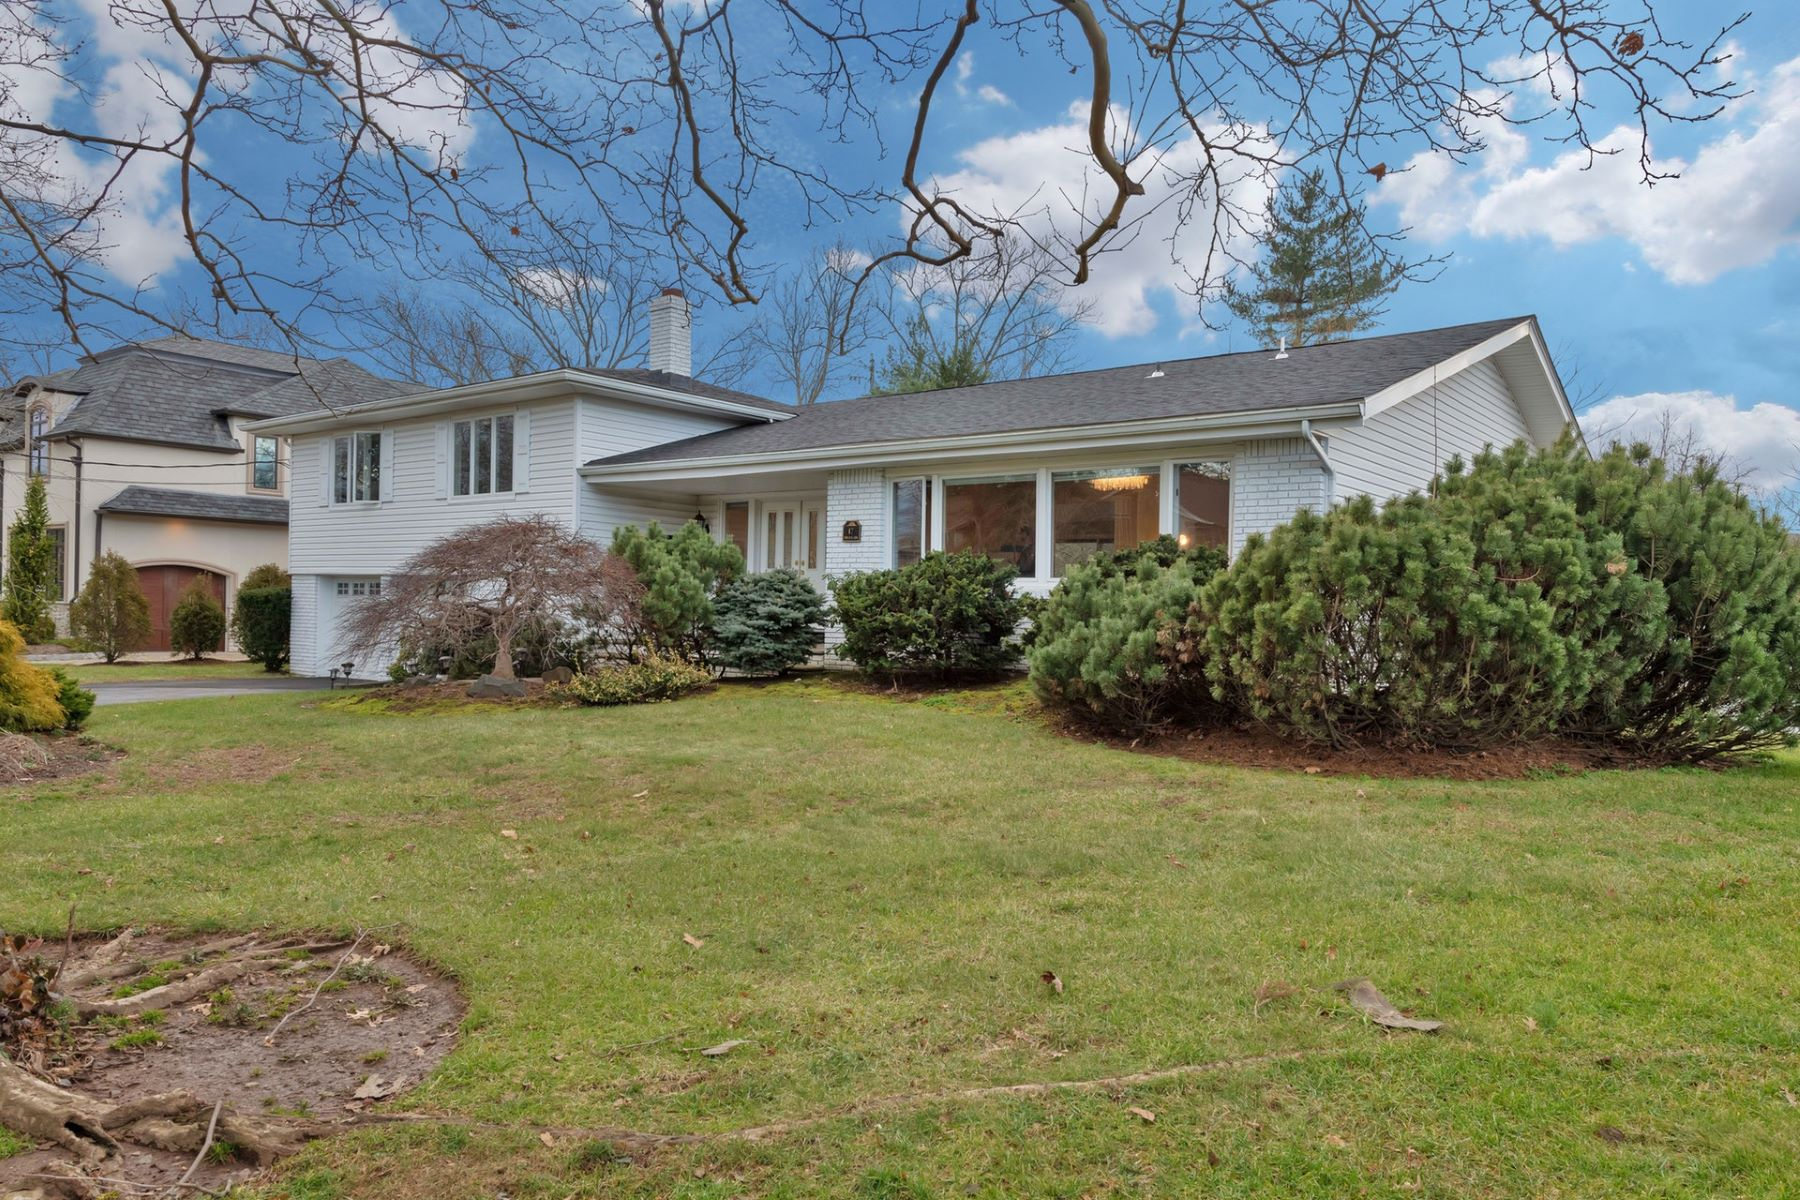 Single Family Home for Sale at Great Family Home! 17 Priscilla Lane, Englewood Cliffs, New Jersey 07632 United States